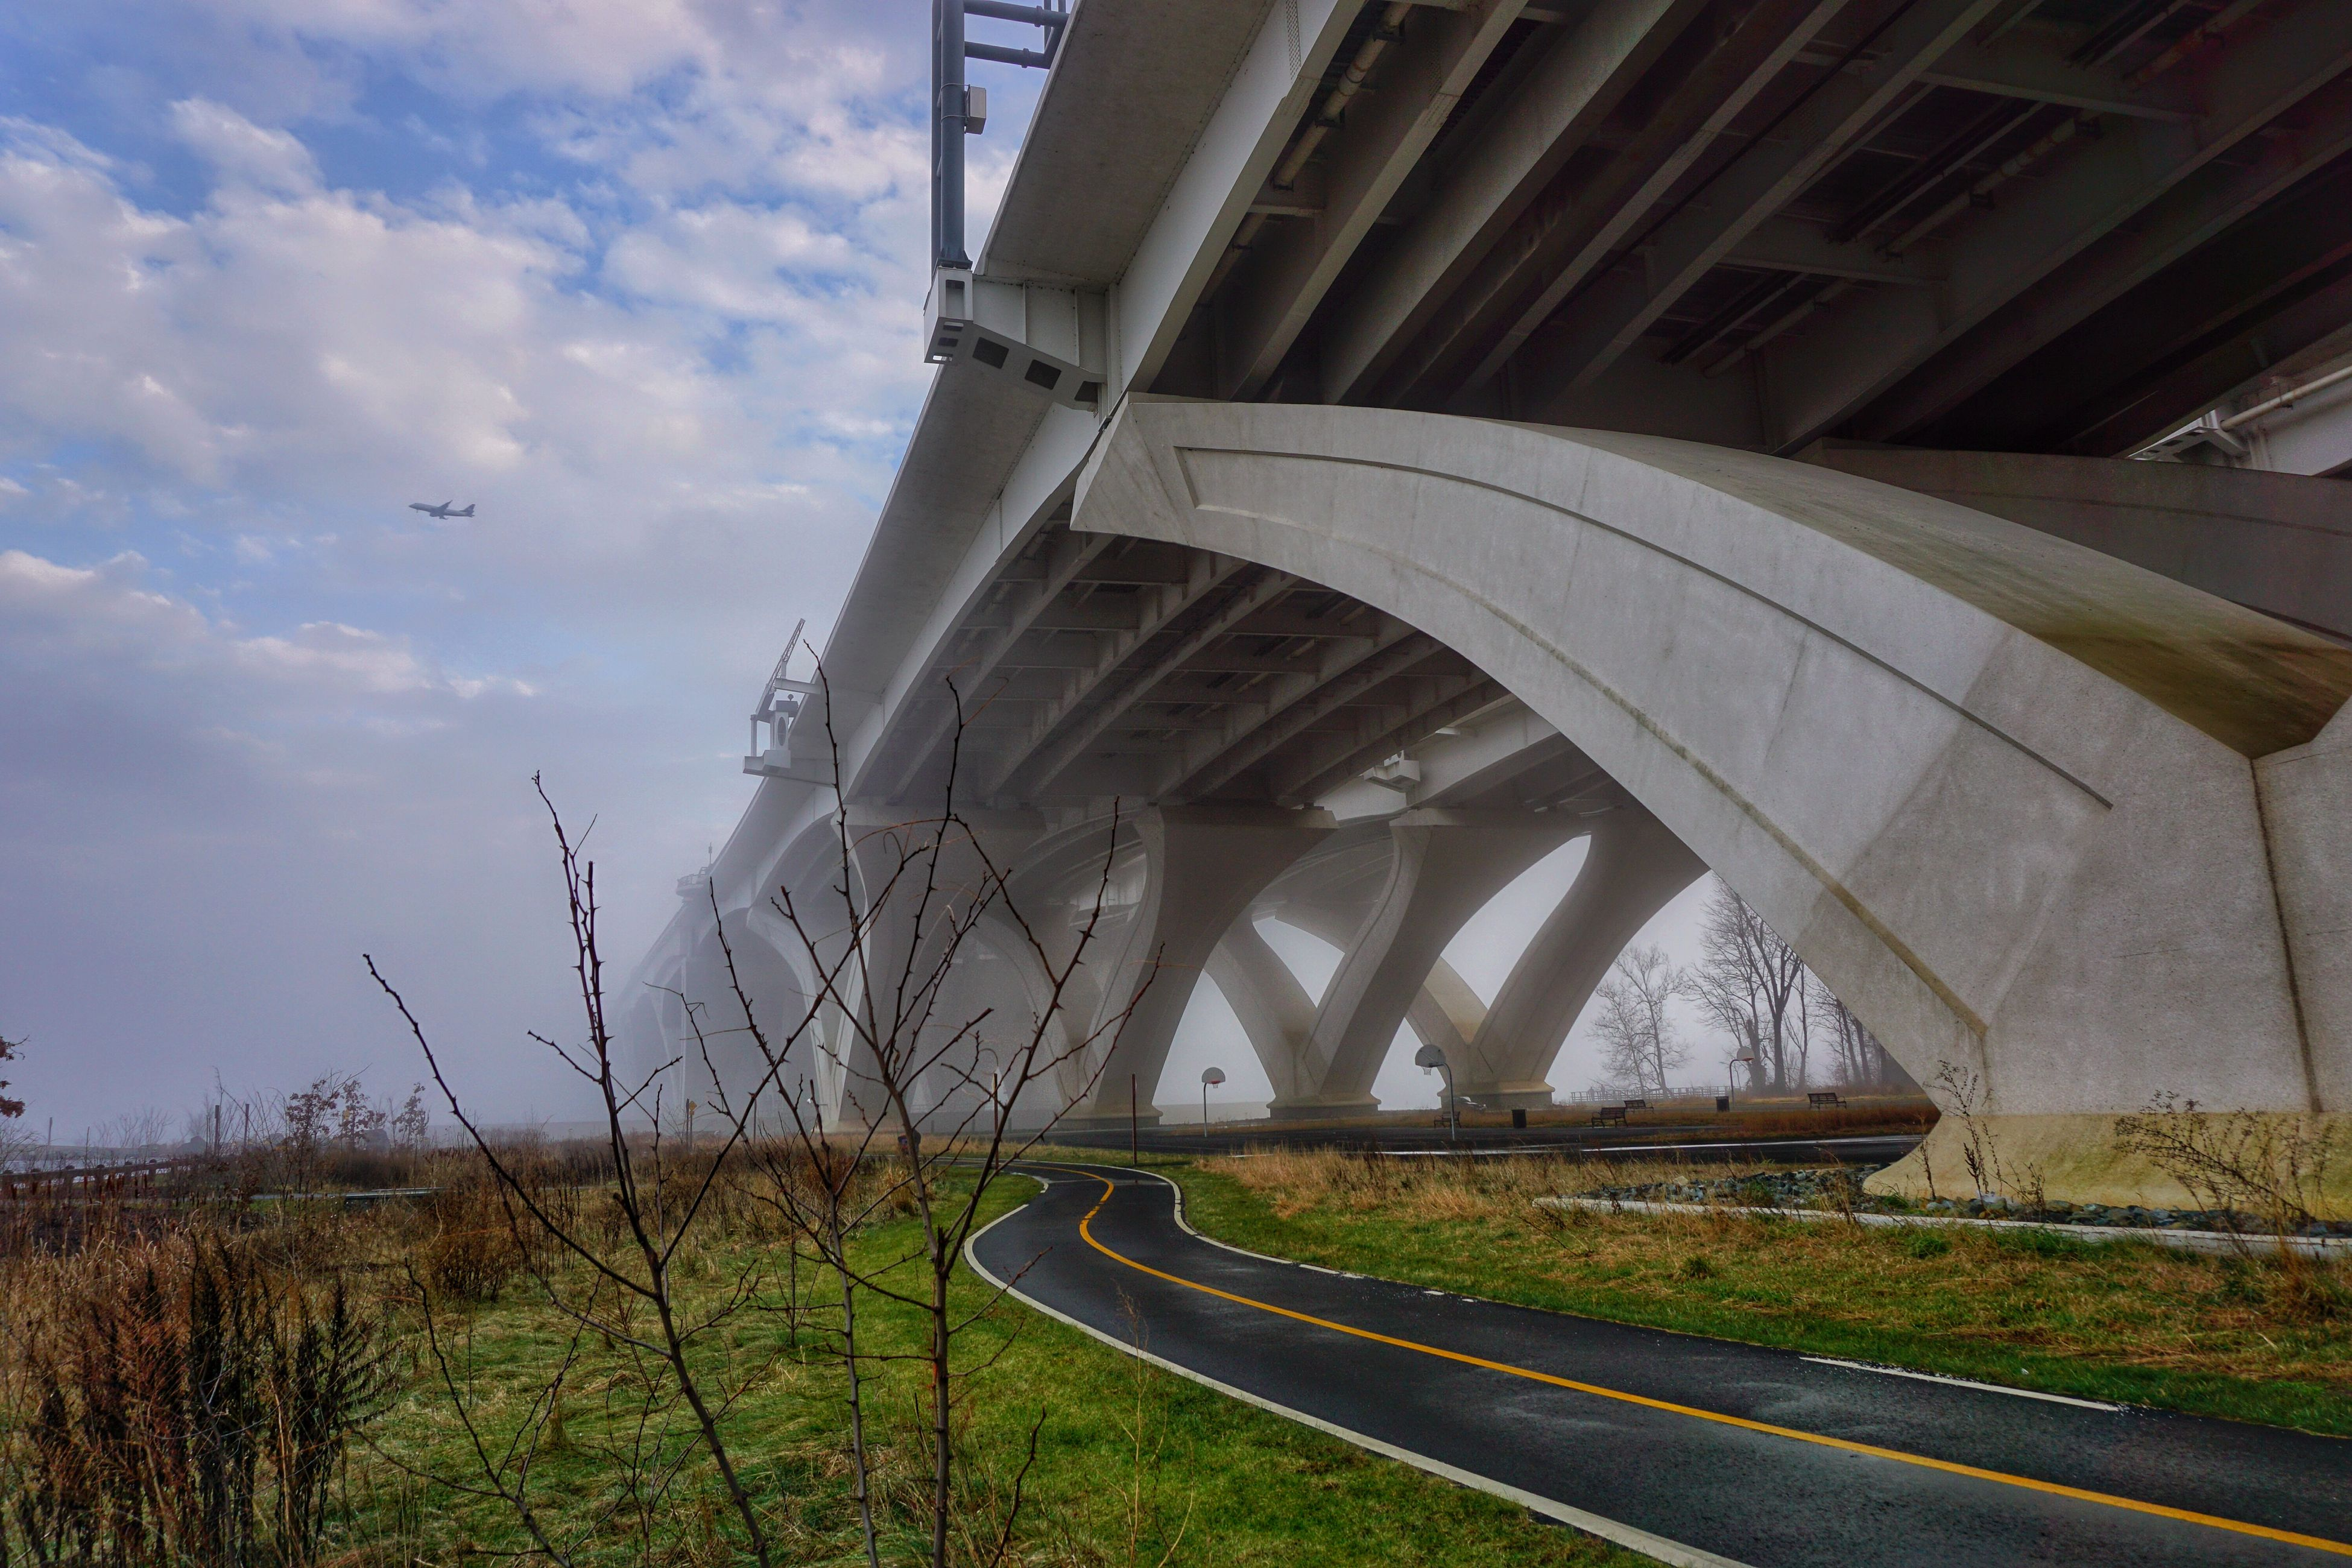 built structure, architecture, sky, transportation, the way forward, railroad track, cloud - sky, grass, field, rail transportation, abandoned, diminishing perspective, day, cloud, no people, building exterior, connection, outdoors, vanishing point, plant